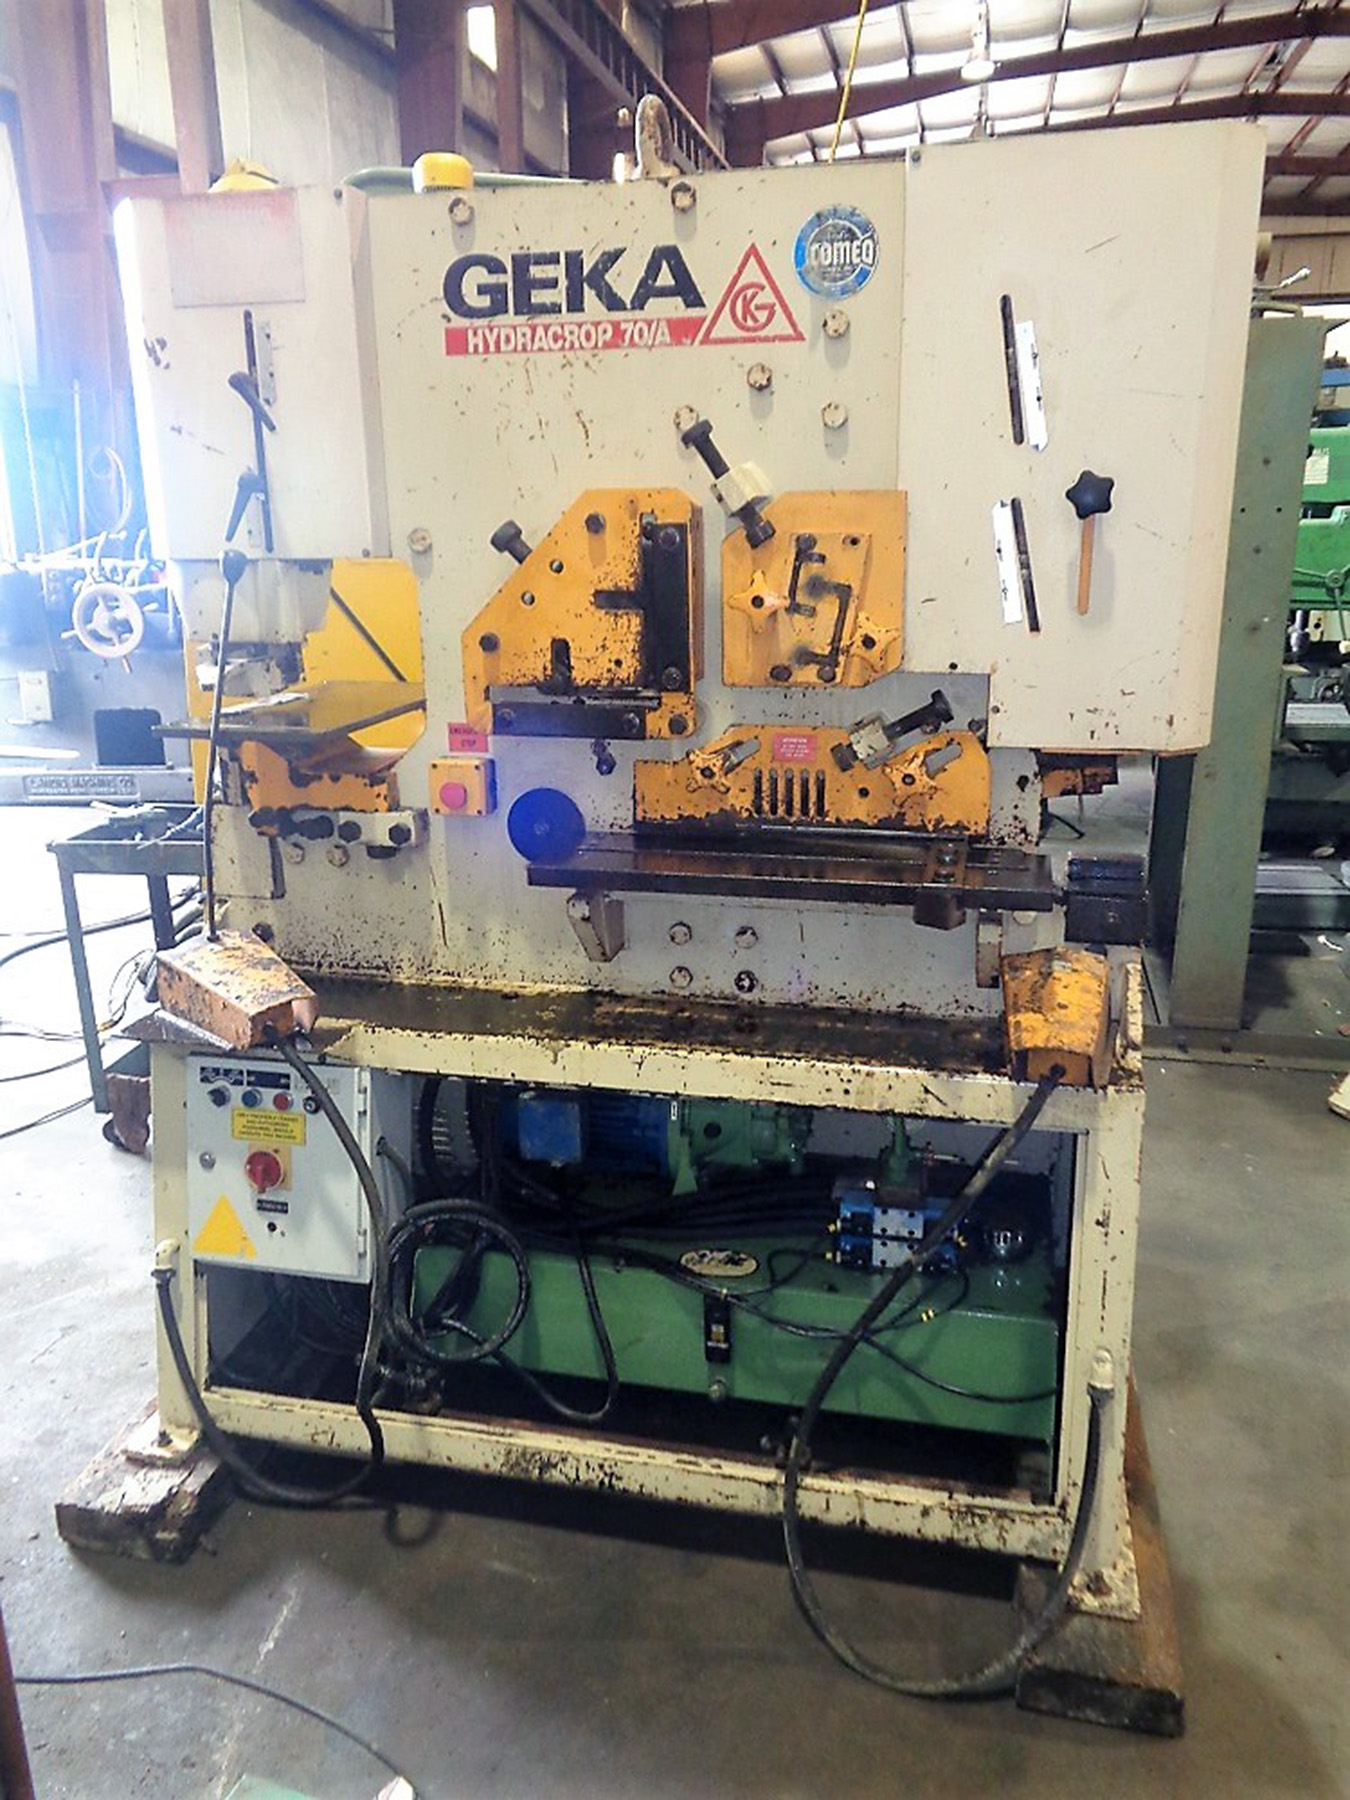 USED, 70 TON GEKA-HYDRACROP MODEL HYD-70 IRONWORKER